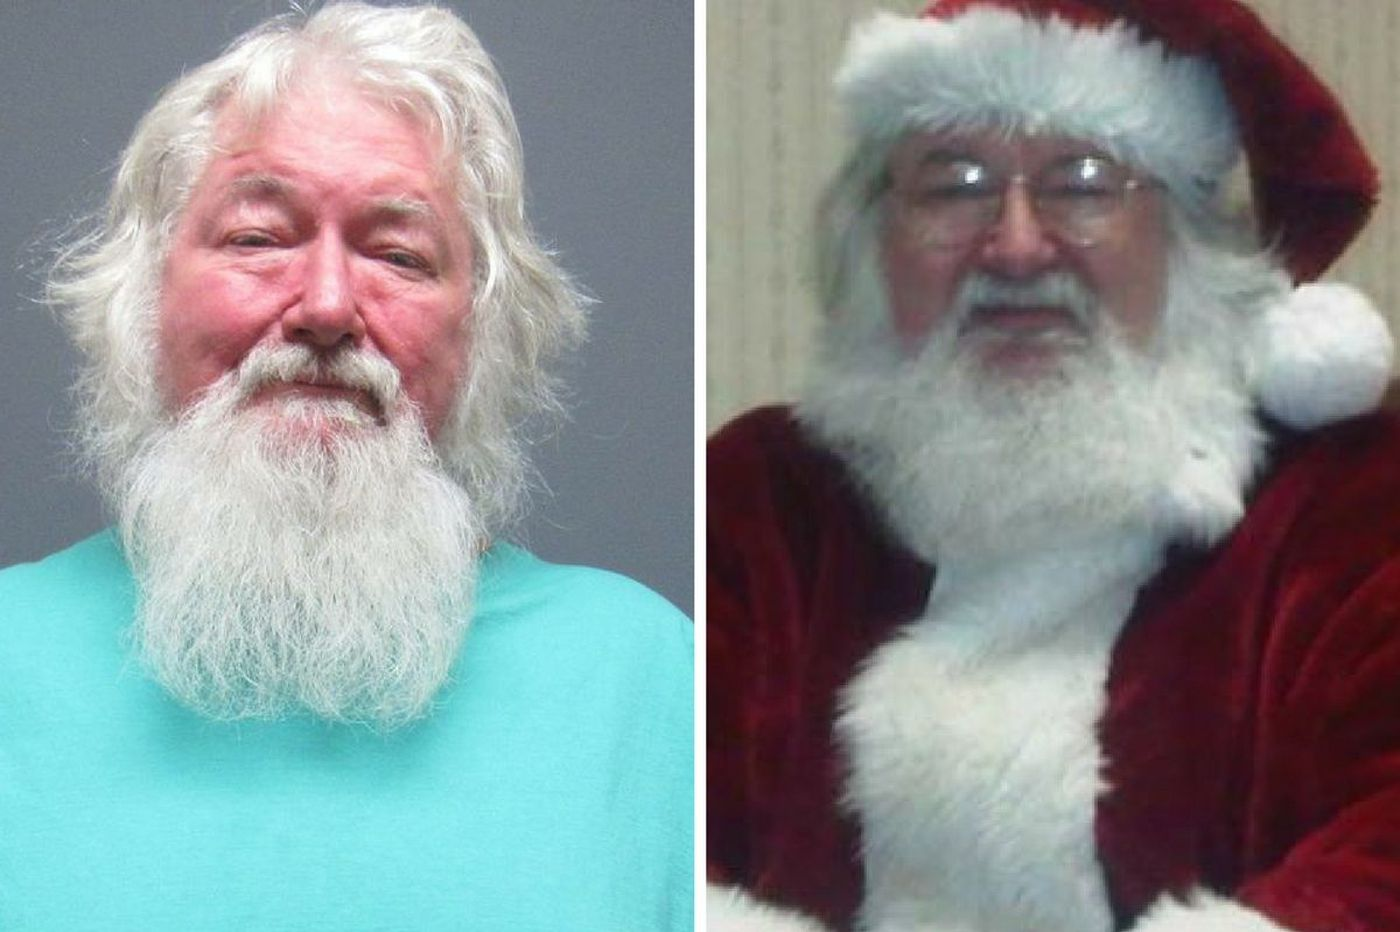 There's no news value in 'crack pipe Santa' | Opinion